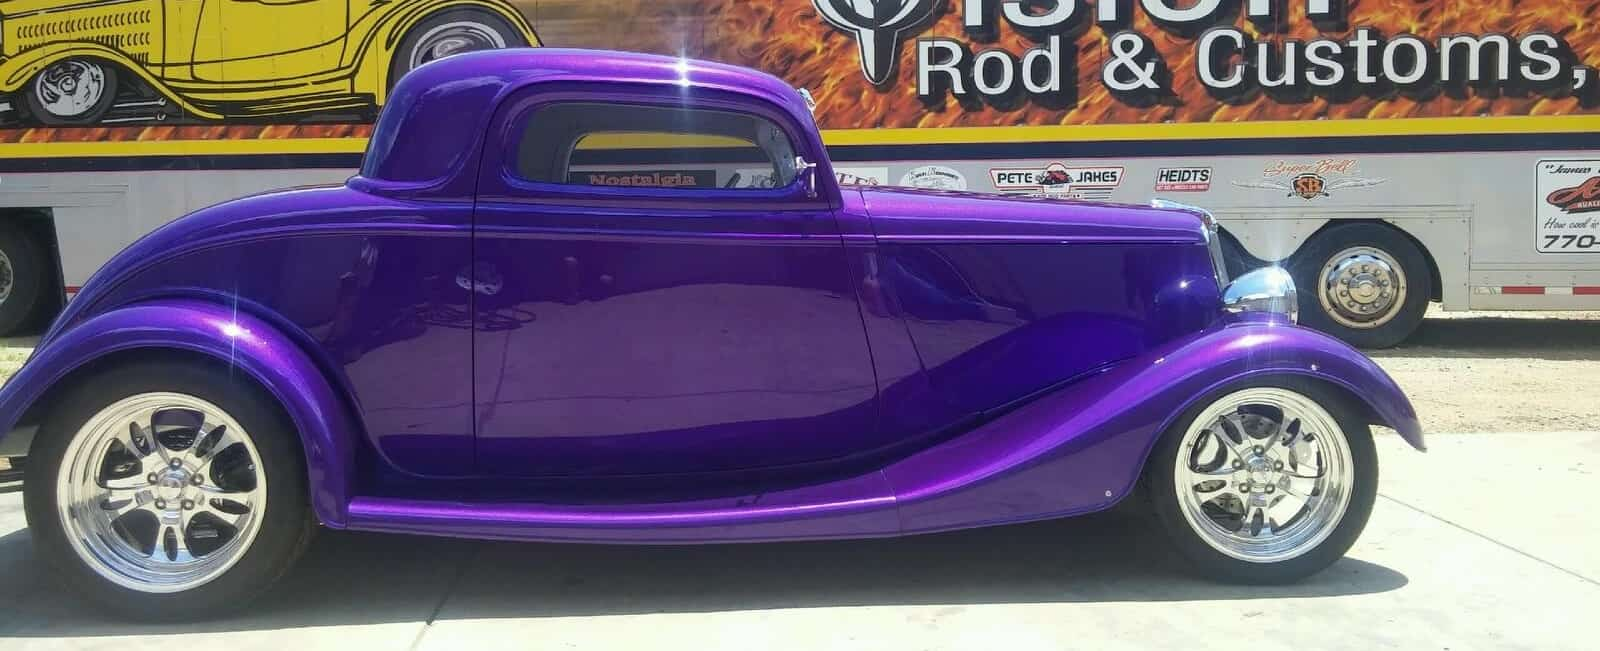 purple_rod_1600x651